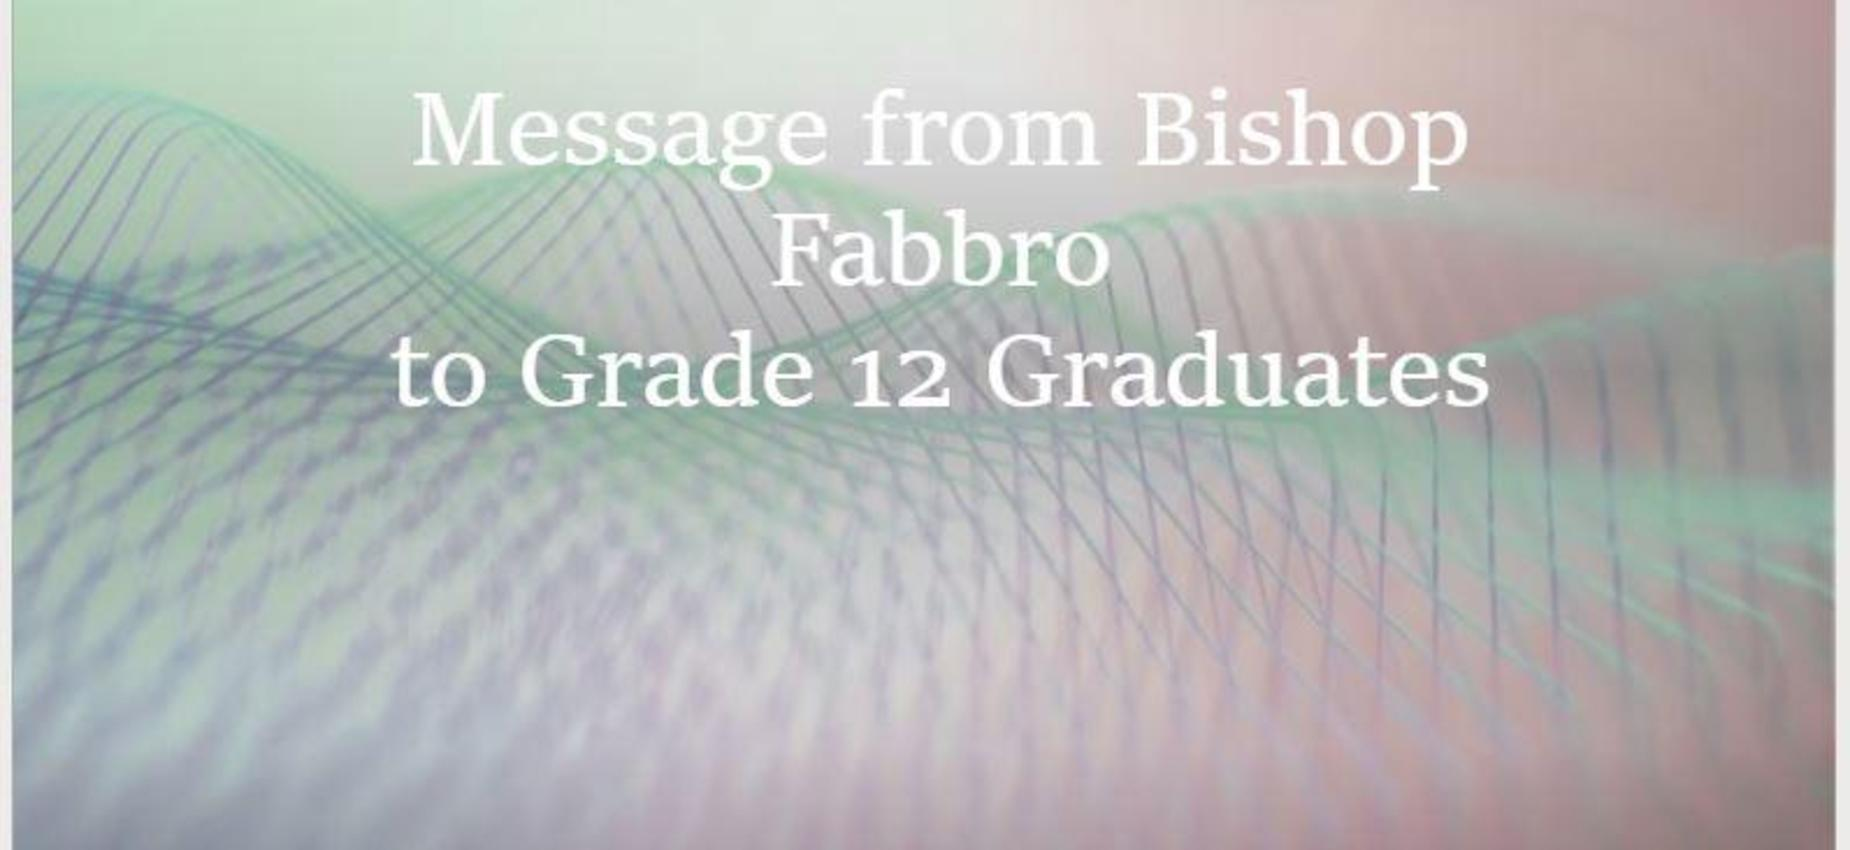 Message from Bishop Fabbro to Grade 12 Students